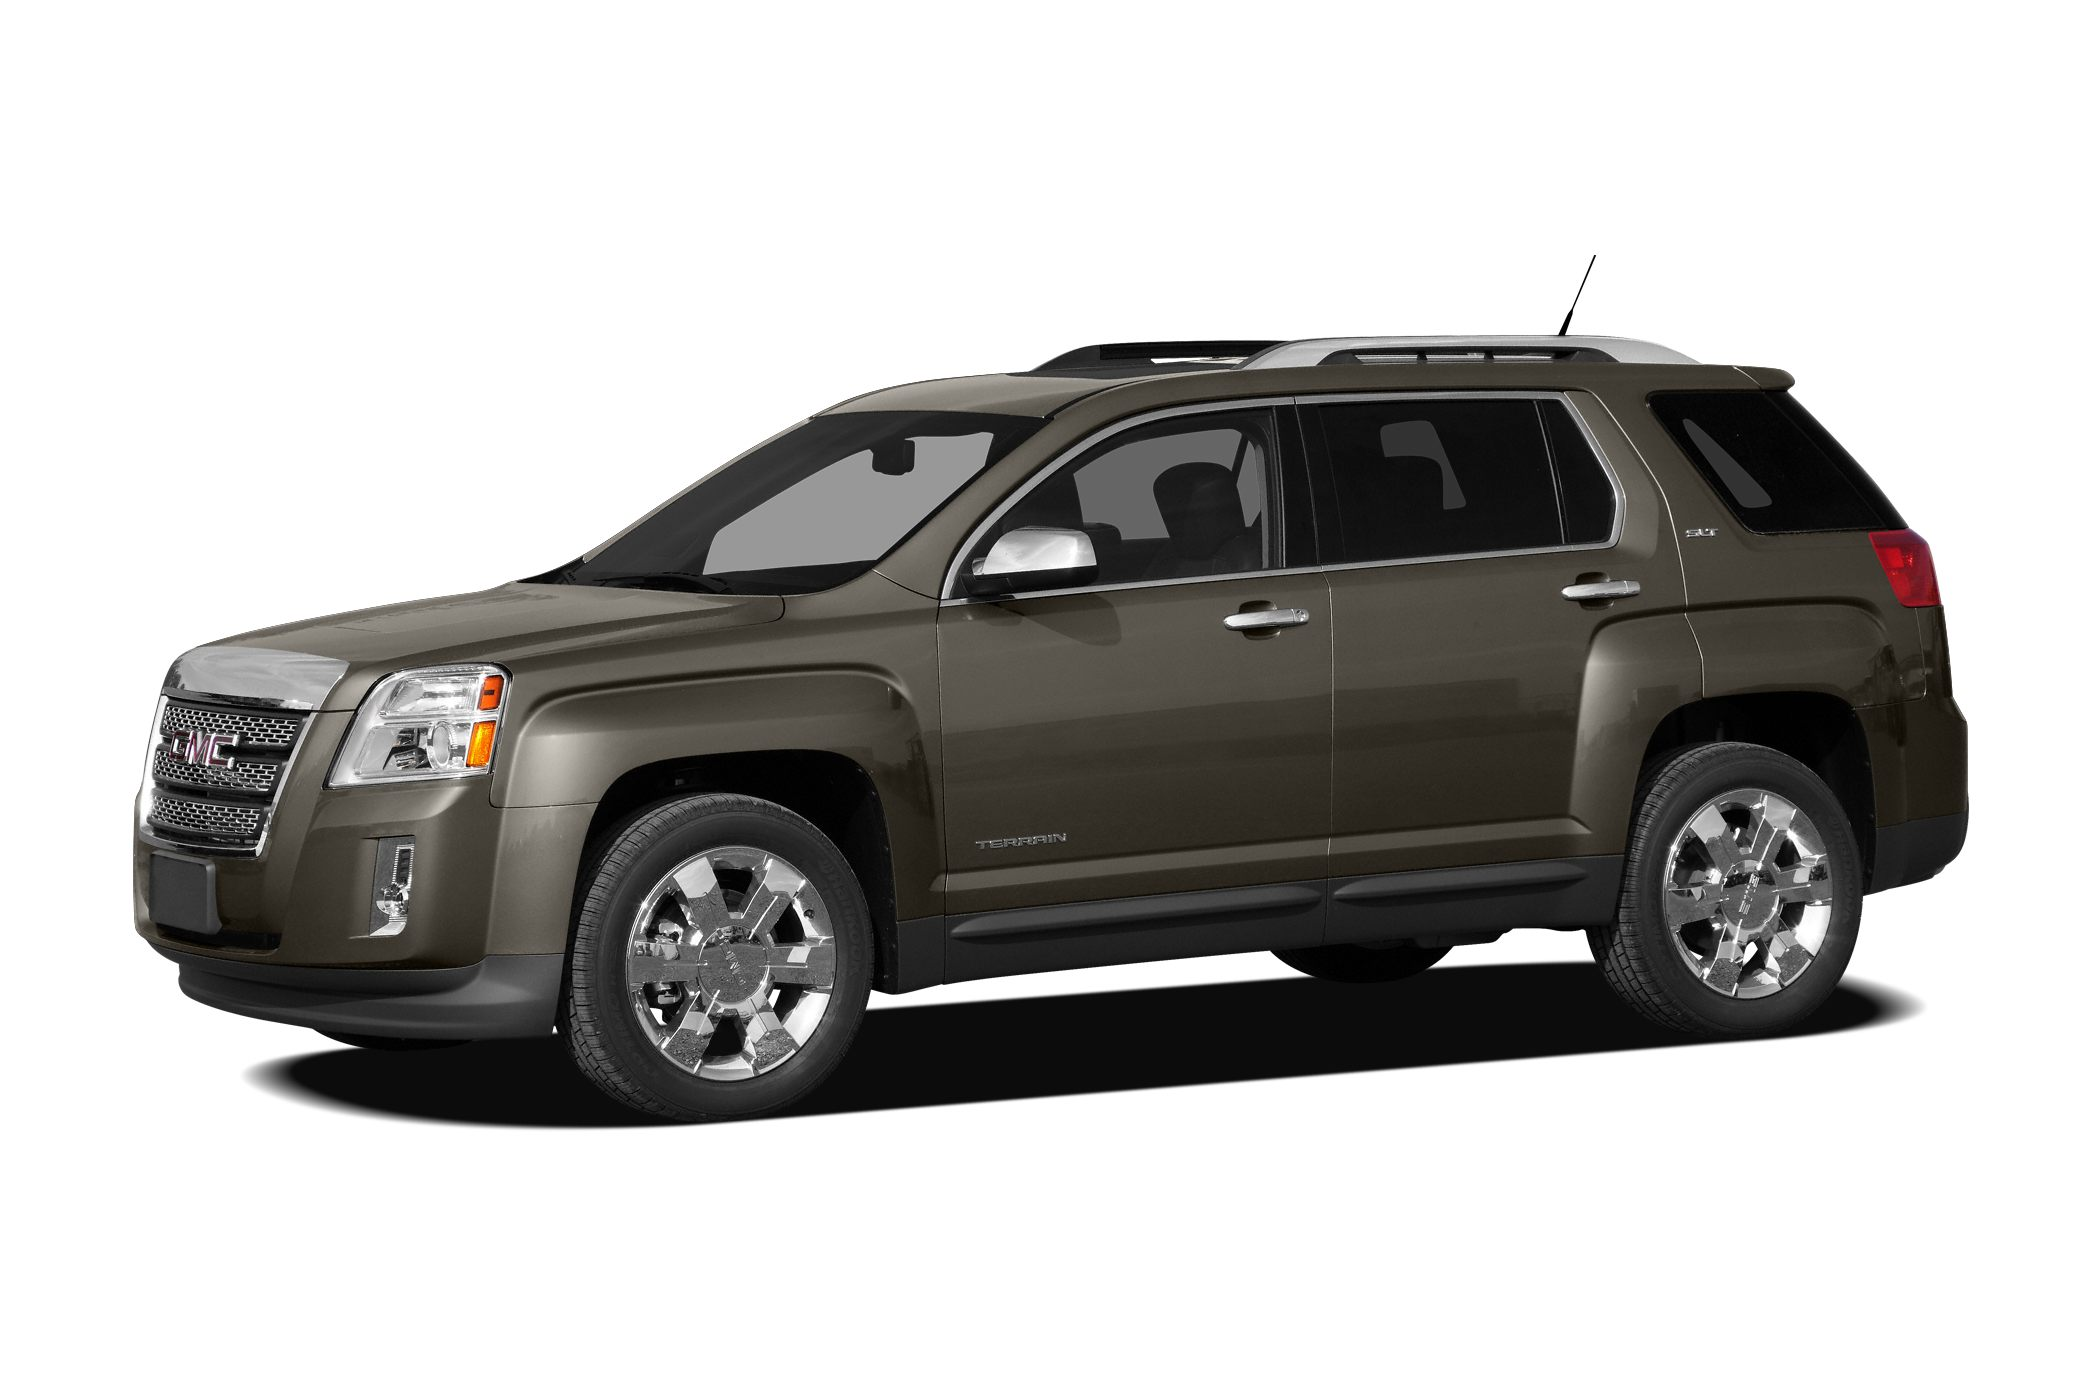 2011 GMC Terrain SLT-1 SUV for sale in Bedford for $23,900 with 59,915 miles